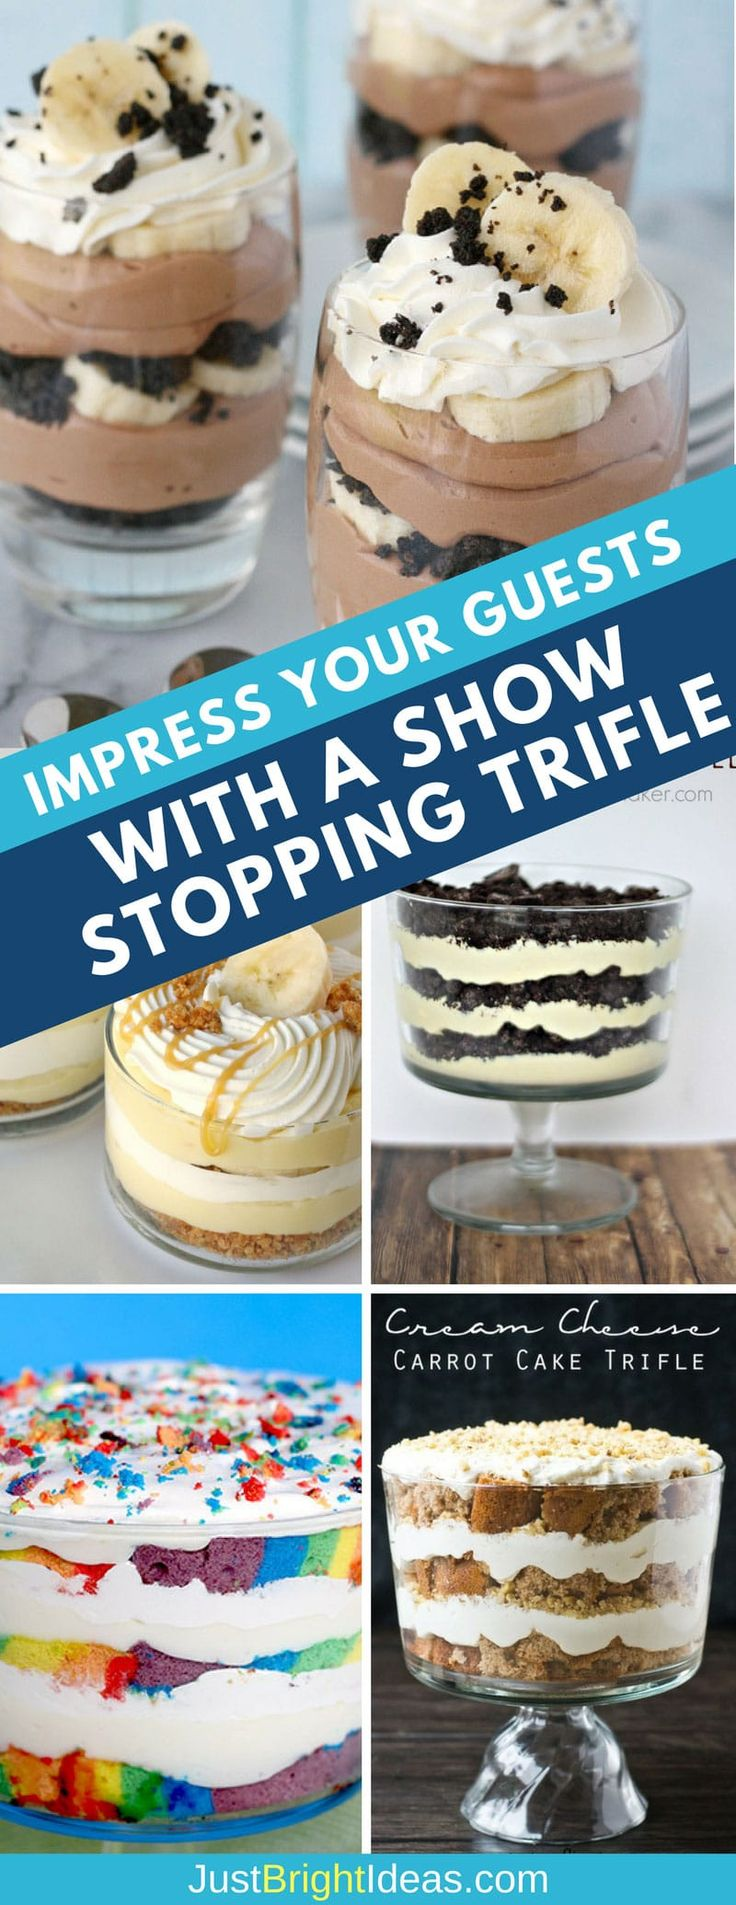 These easy trifle recipes are simple but delicious and perfect for the Holiday Season. From pot lucks to book clubs, trifles are perfect for feeding a crowd!